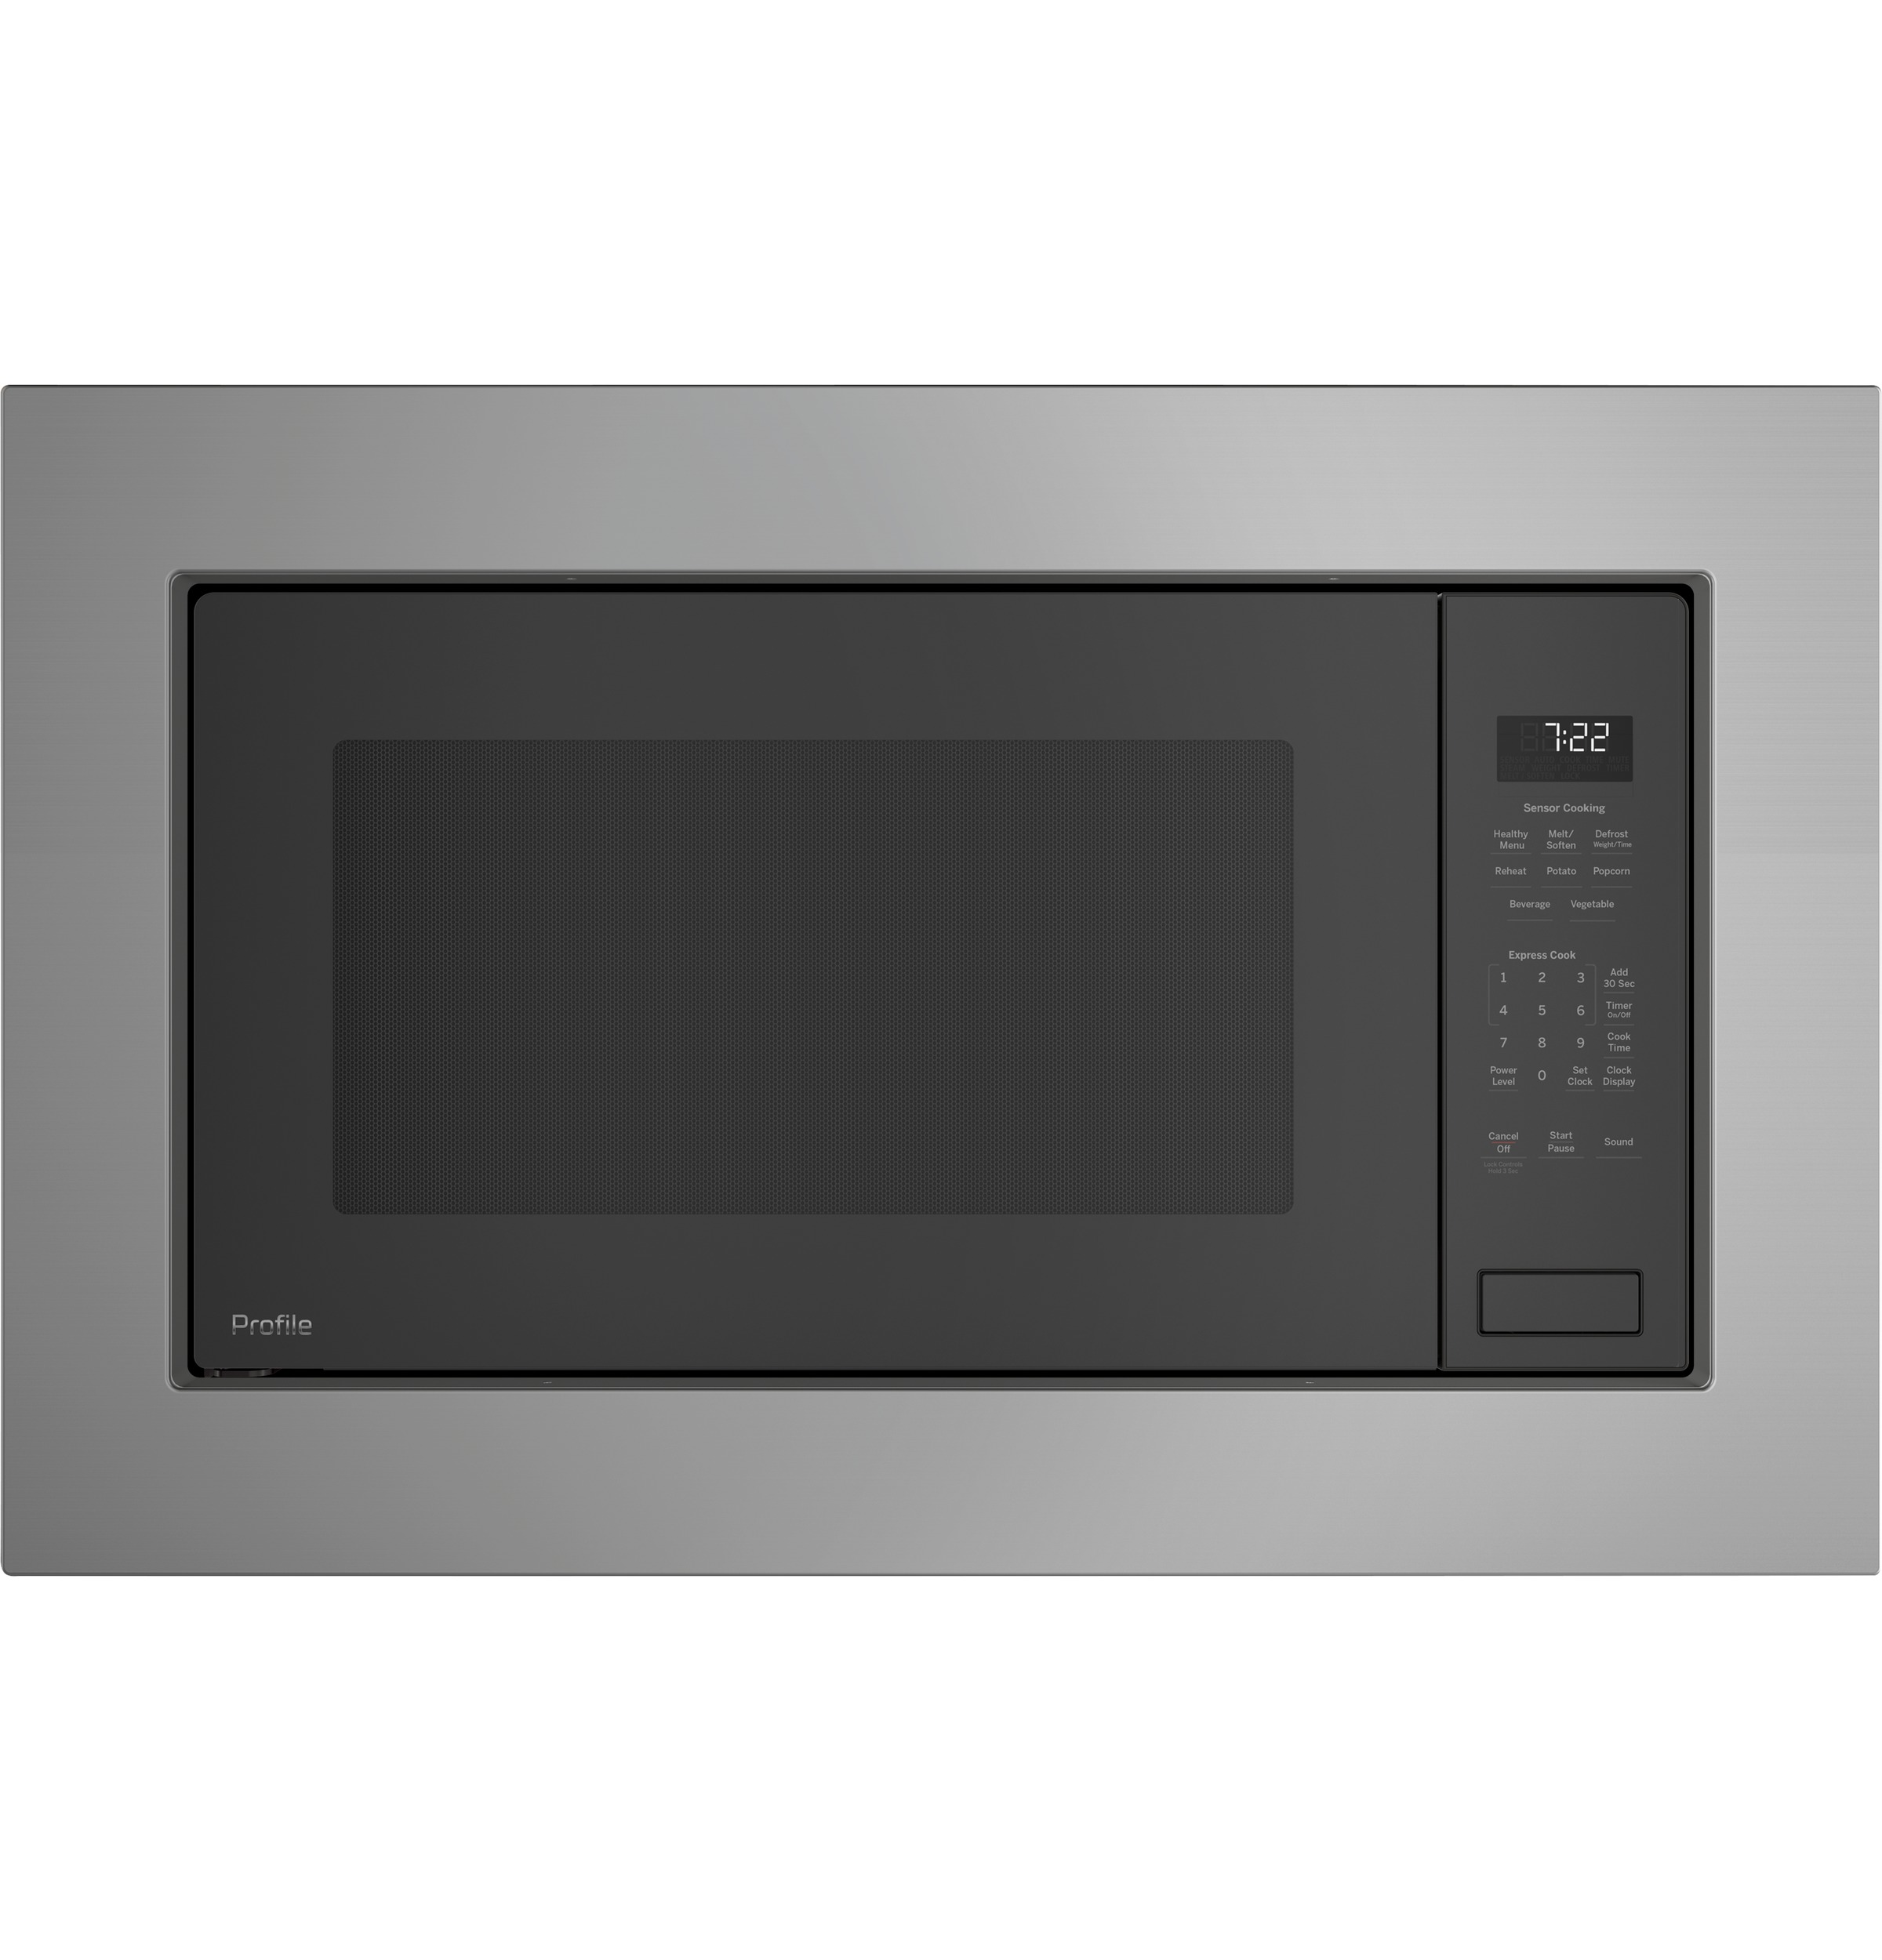 GE Profile GE Profile™ Series 2.2 Cu. Ft. Built-In Sensor Microwave Oven